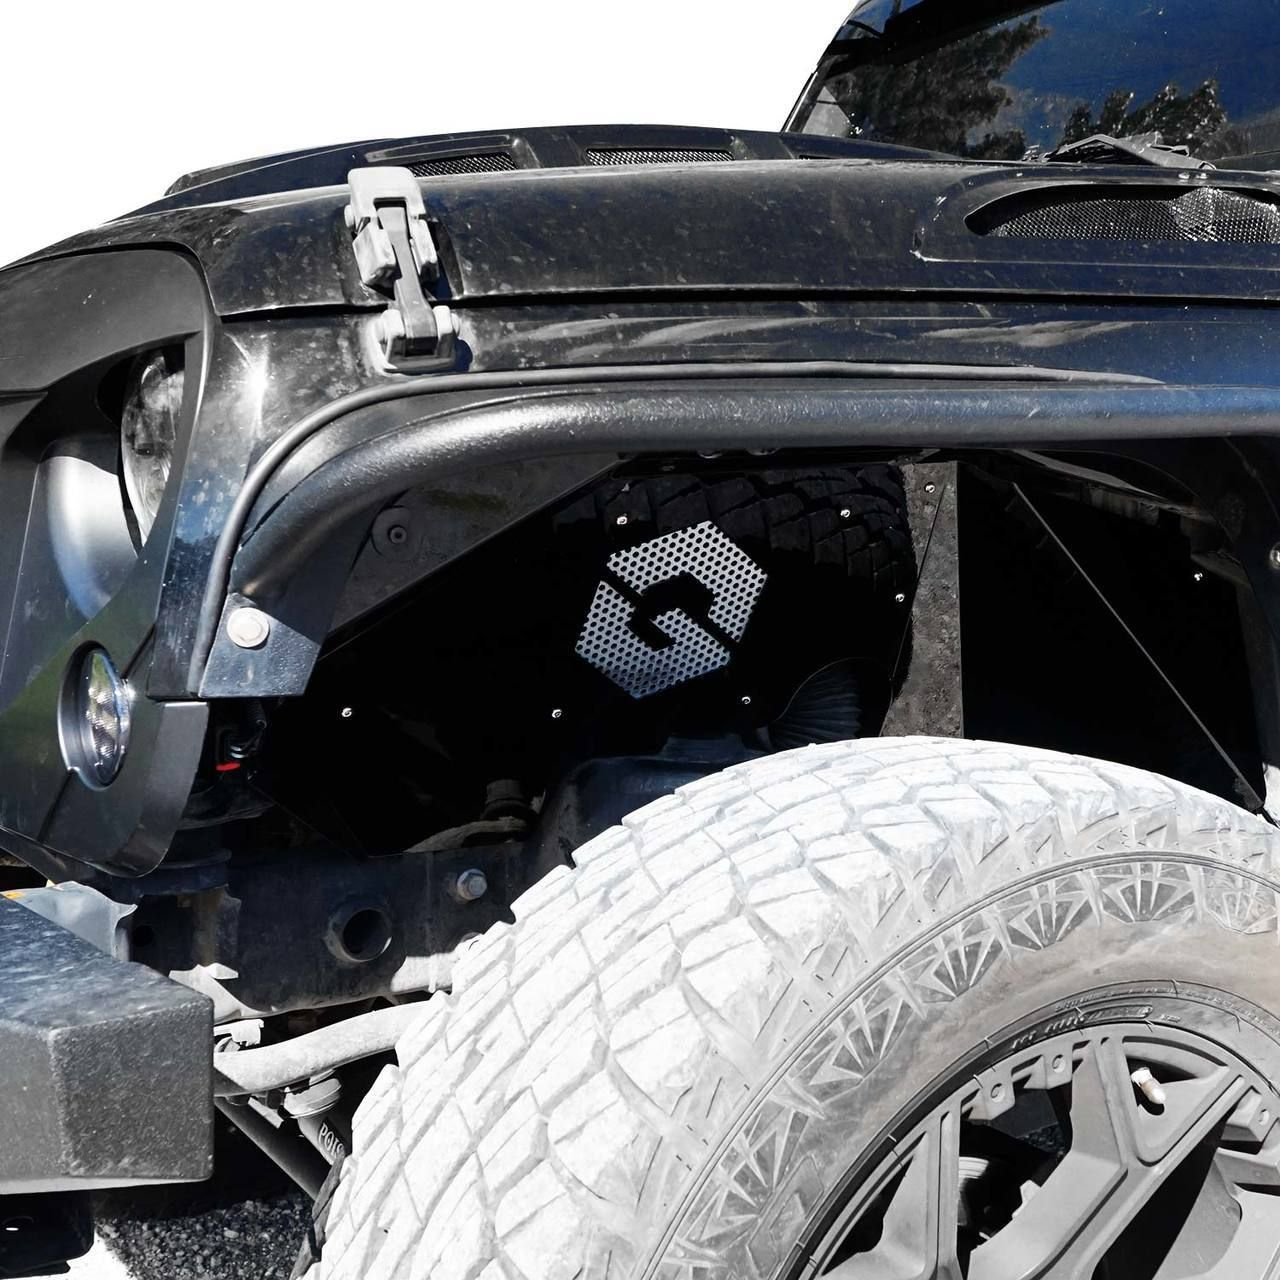 parts attachment wrangler aftermarket luxury cars accessories nice jeep of beautiful awesome and